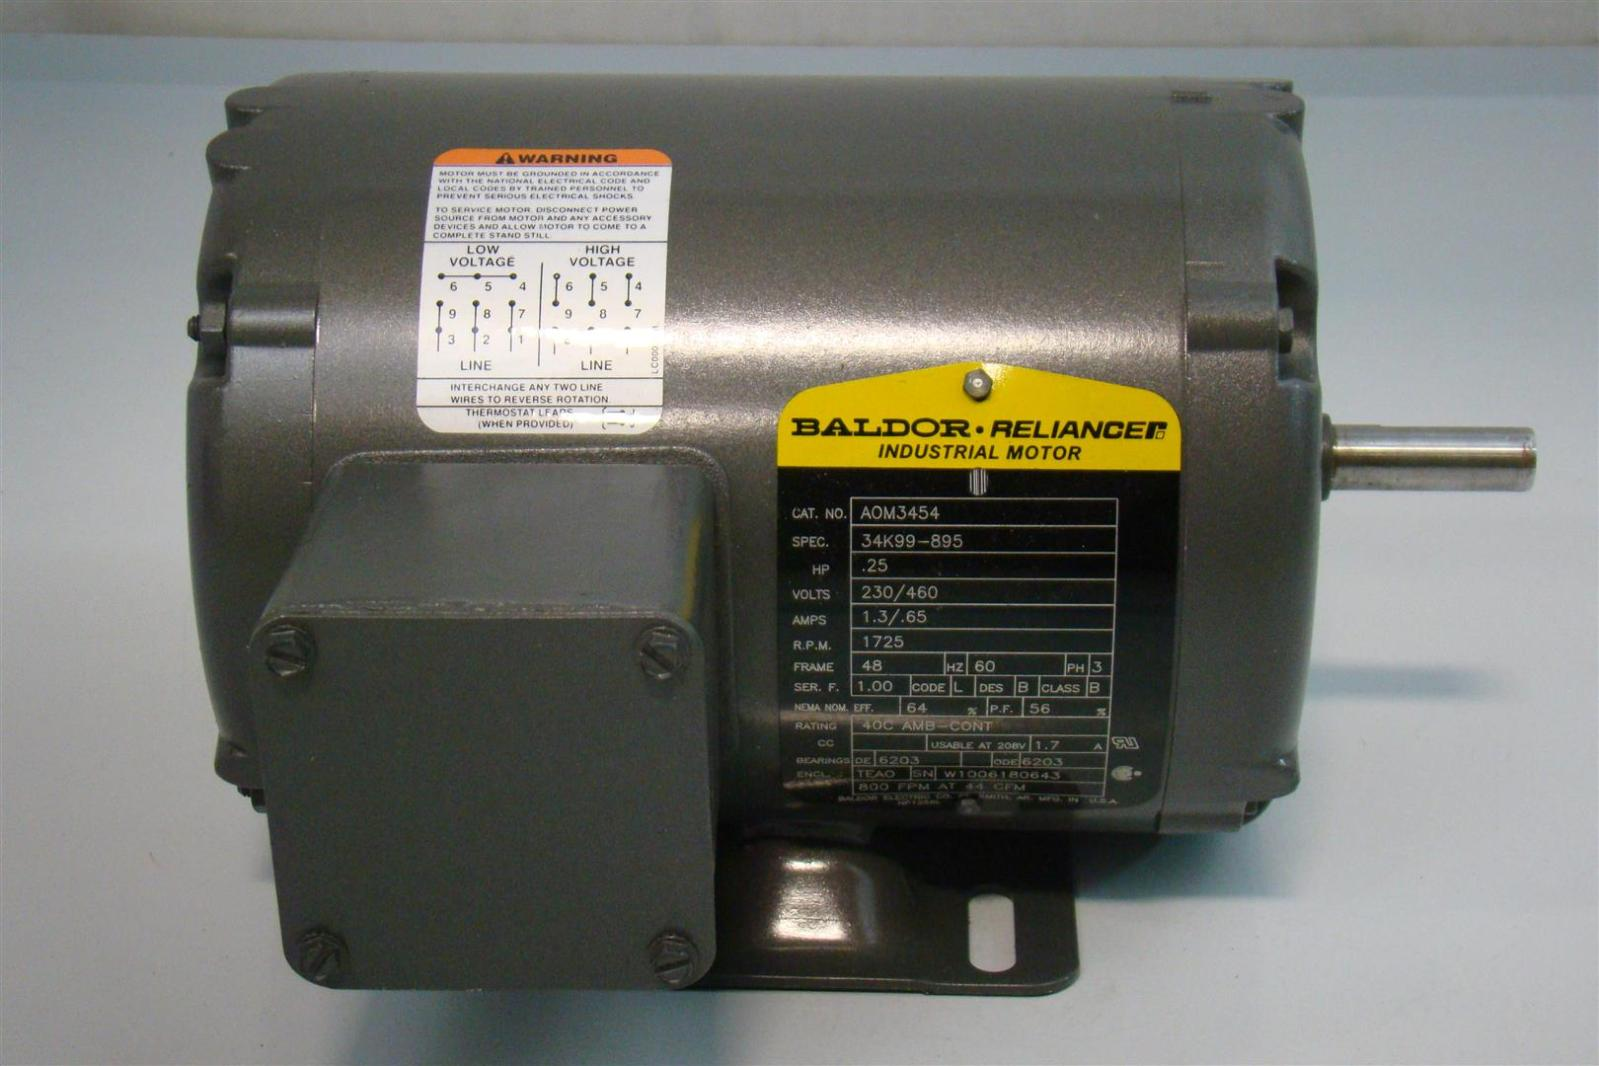 M3558t Baldor Wiring Diagramt Motor Capacitor Diagram 460v Diagrams Afe126 Reliance Industrial 25hp 13 65amps 1725rpm 60hz Aom3454resize